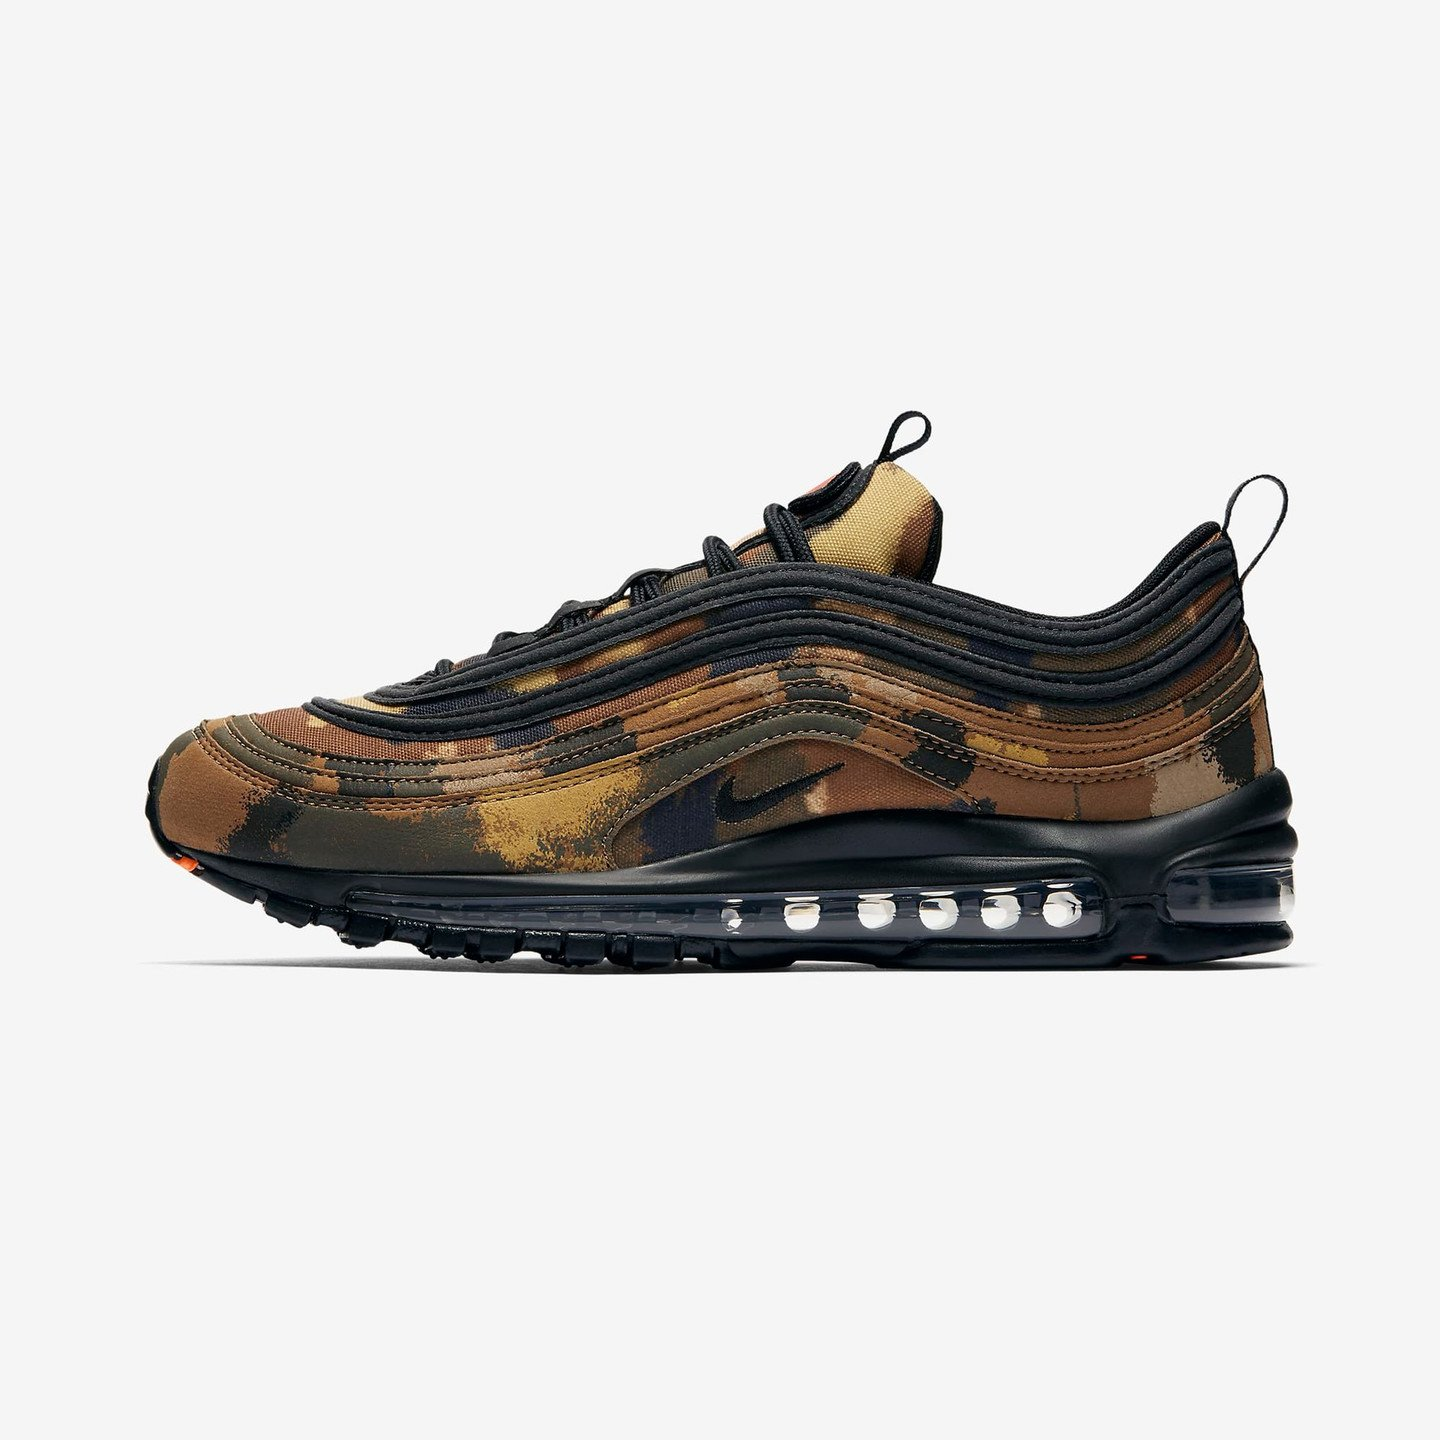 hot sales c82a6 73269 ... closeout nike air max 97 premium italy camo ale brown black cargo khaki  c0095 f49f6